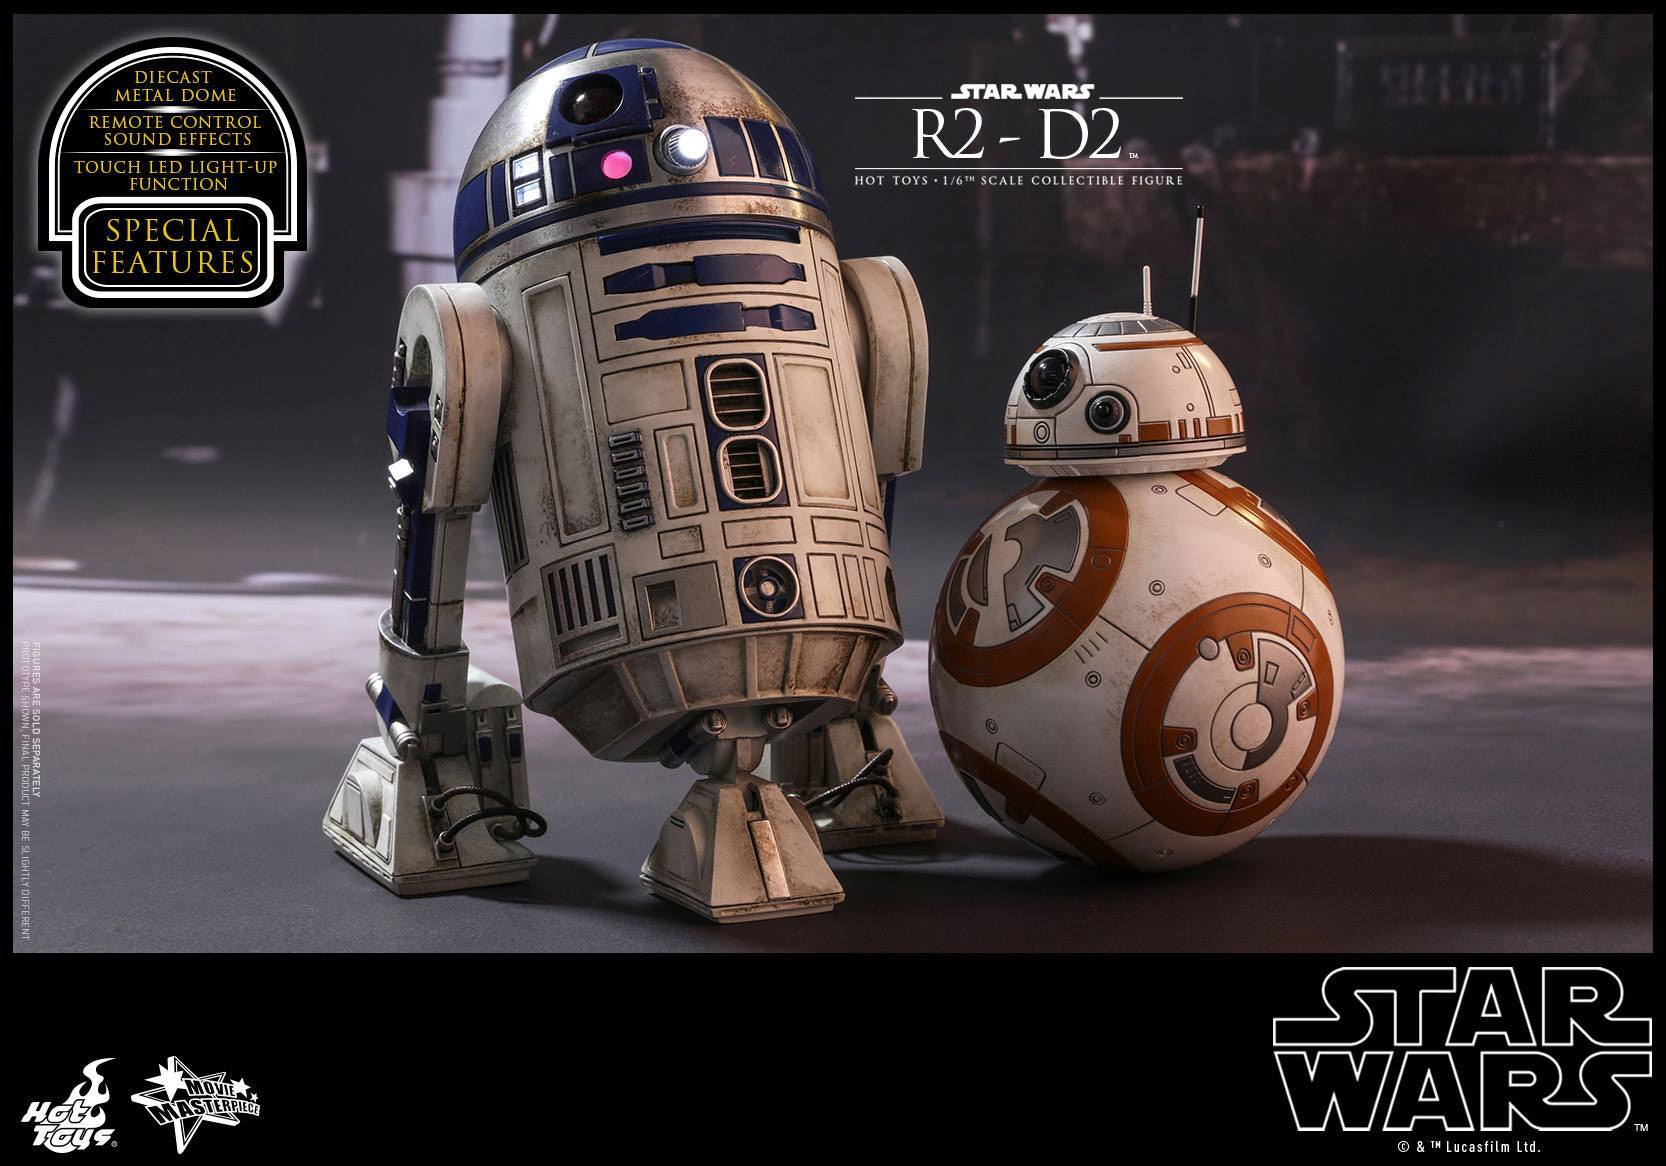 Hot Toys - MMS408 - Star Wars: The Force Awakens - R2-D2 - Marvelous Toys - 10